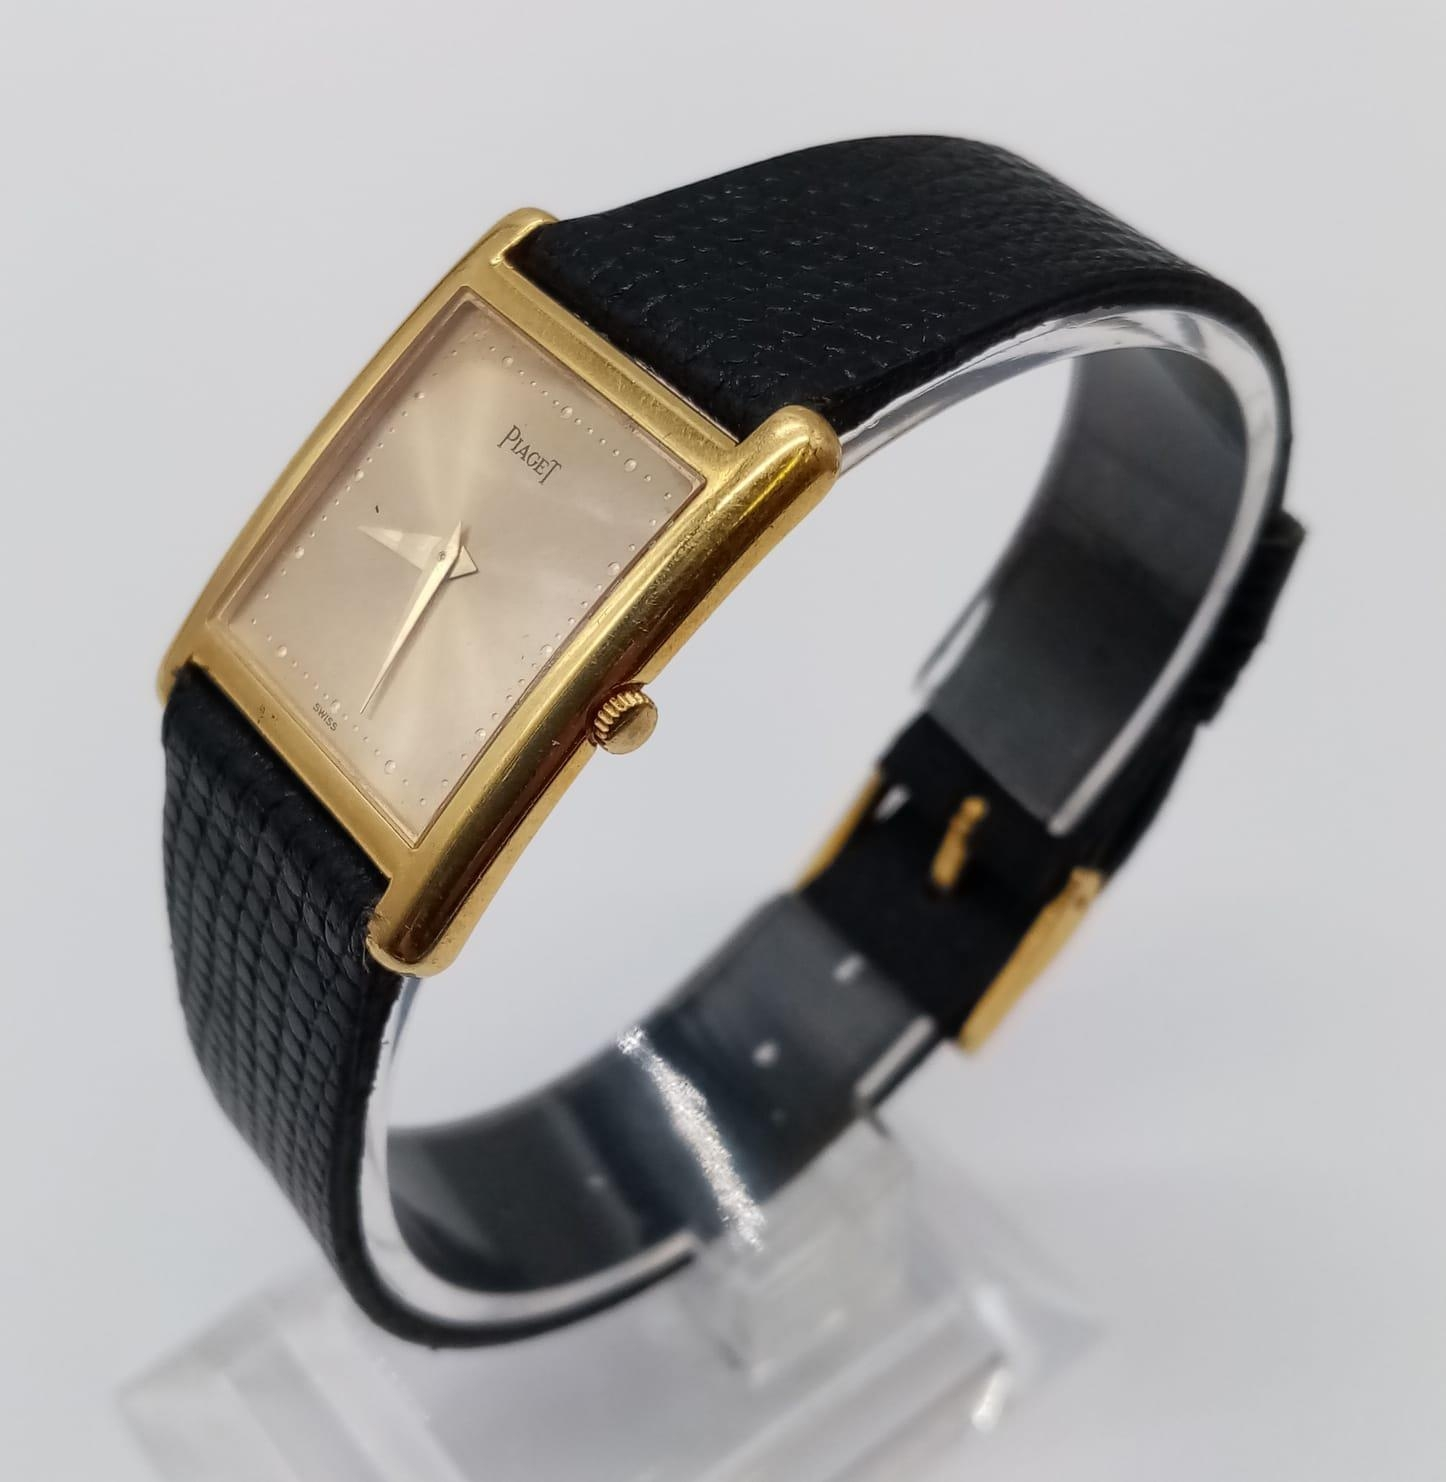 Vintage Plaget 18ct gold ladies watch with square face (22mm) and leather strap - Image 2 of 10